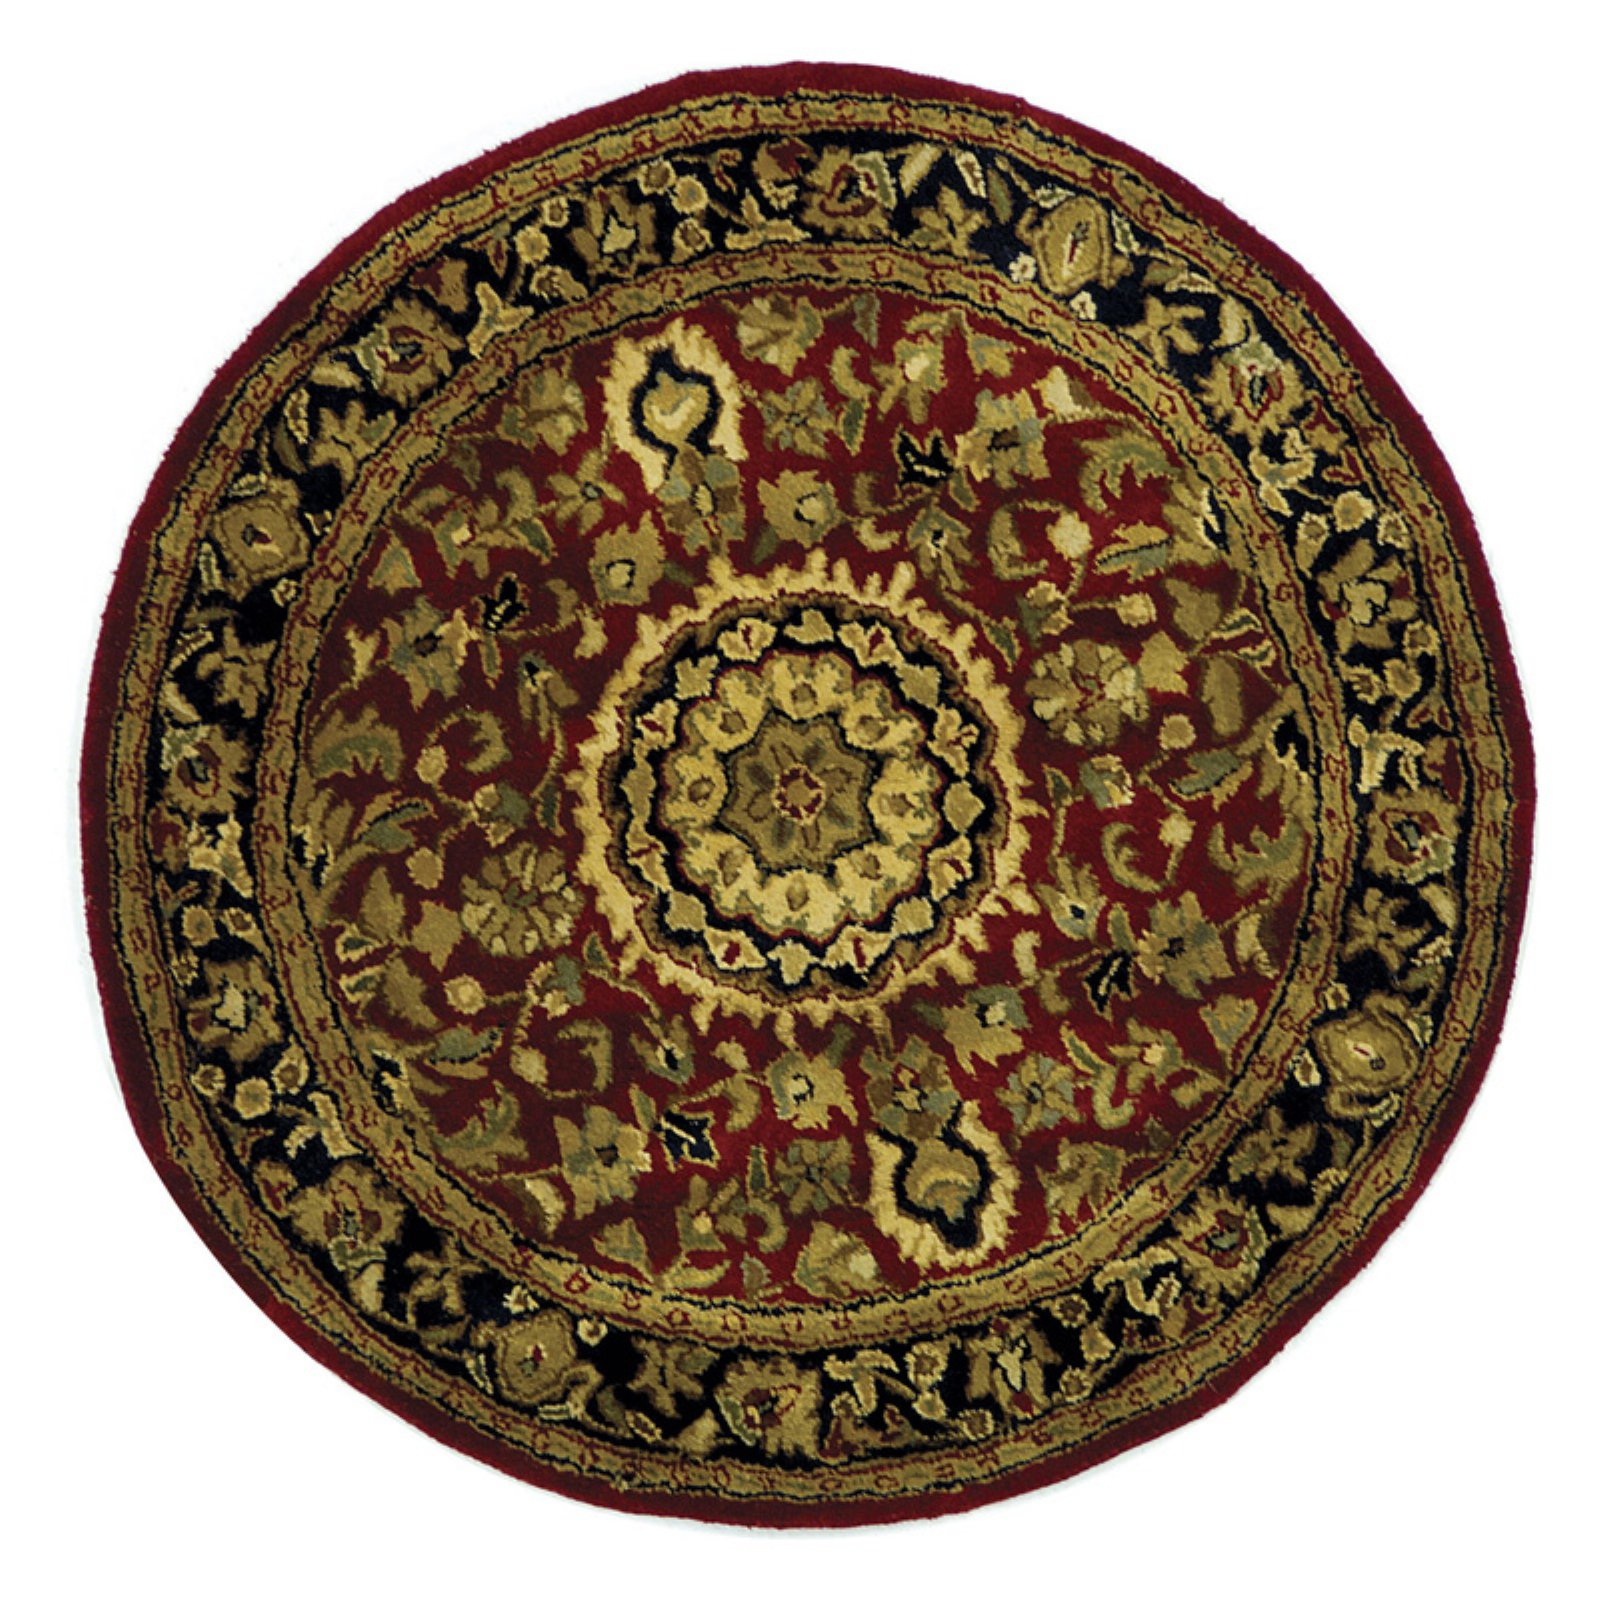 Safavieh Classic CL762B Area Rug - Red/Navy